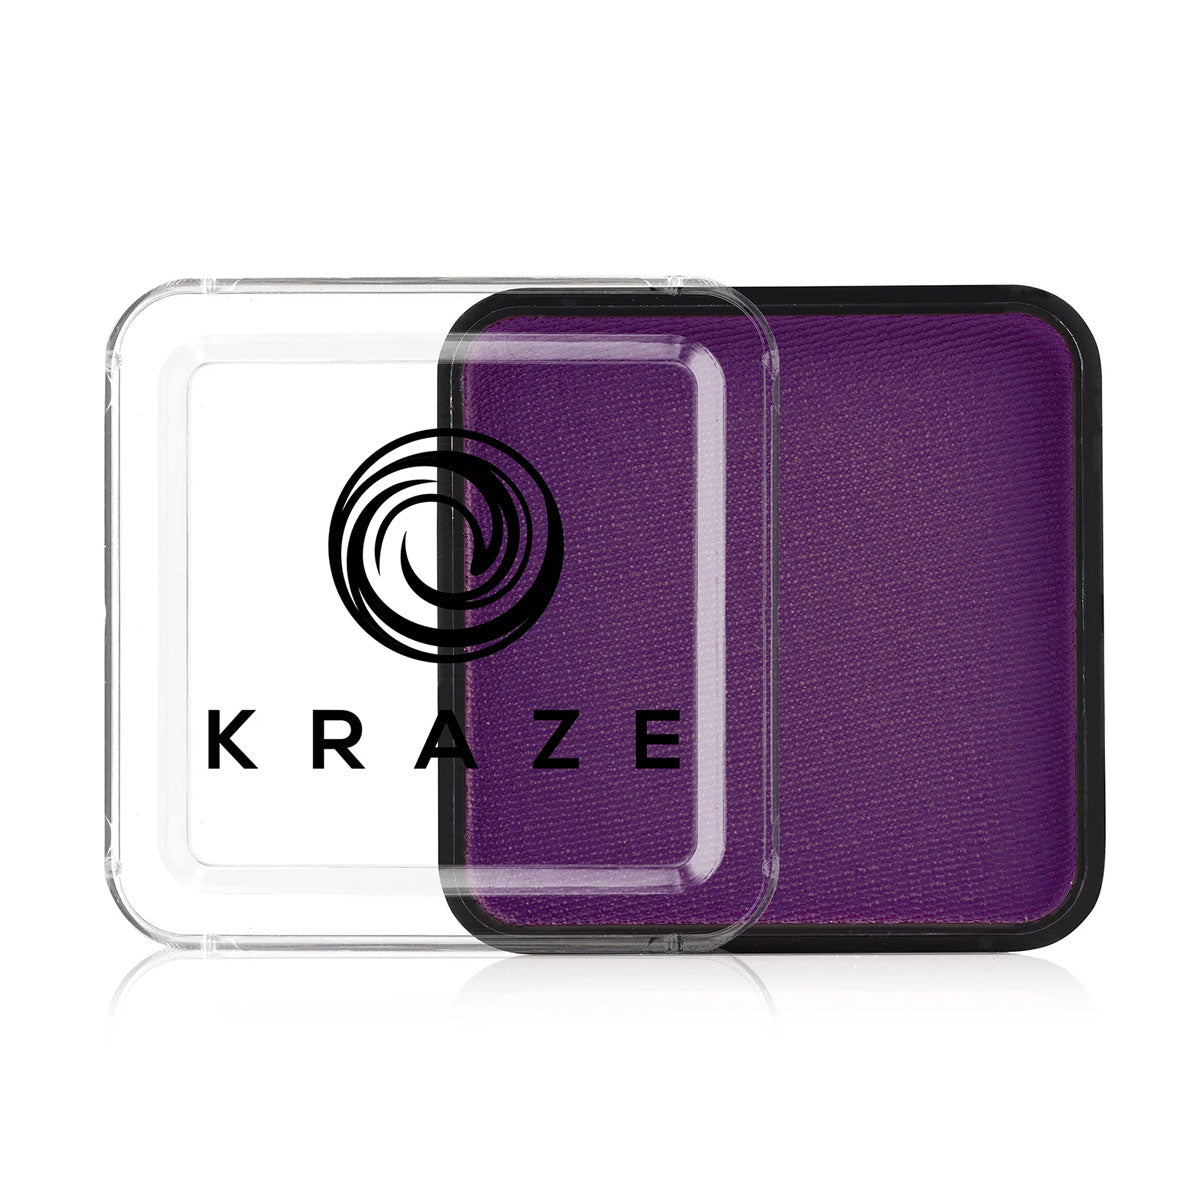 Metallic Deep Purple Square 25g - Kraze